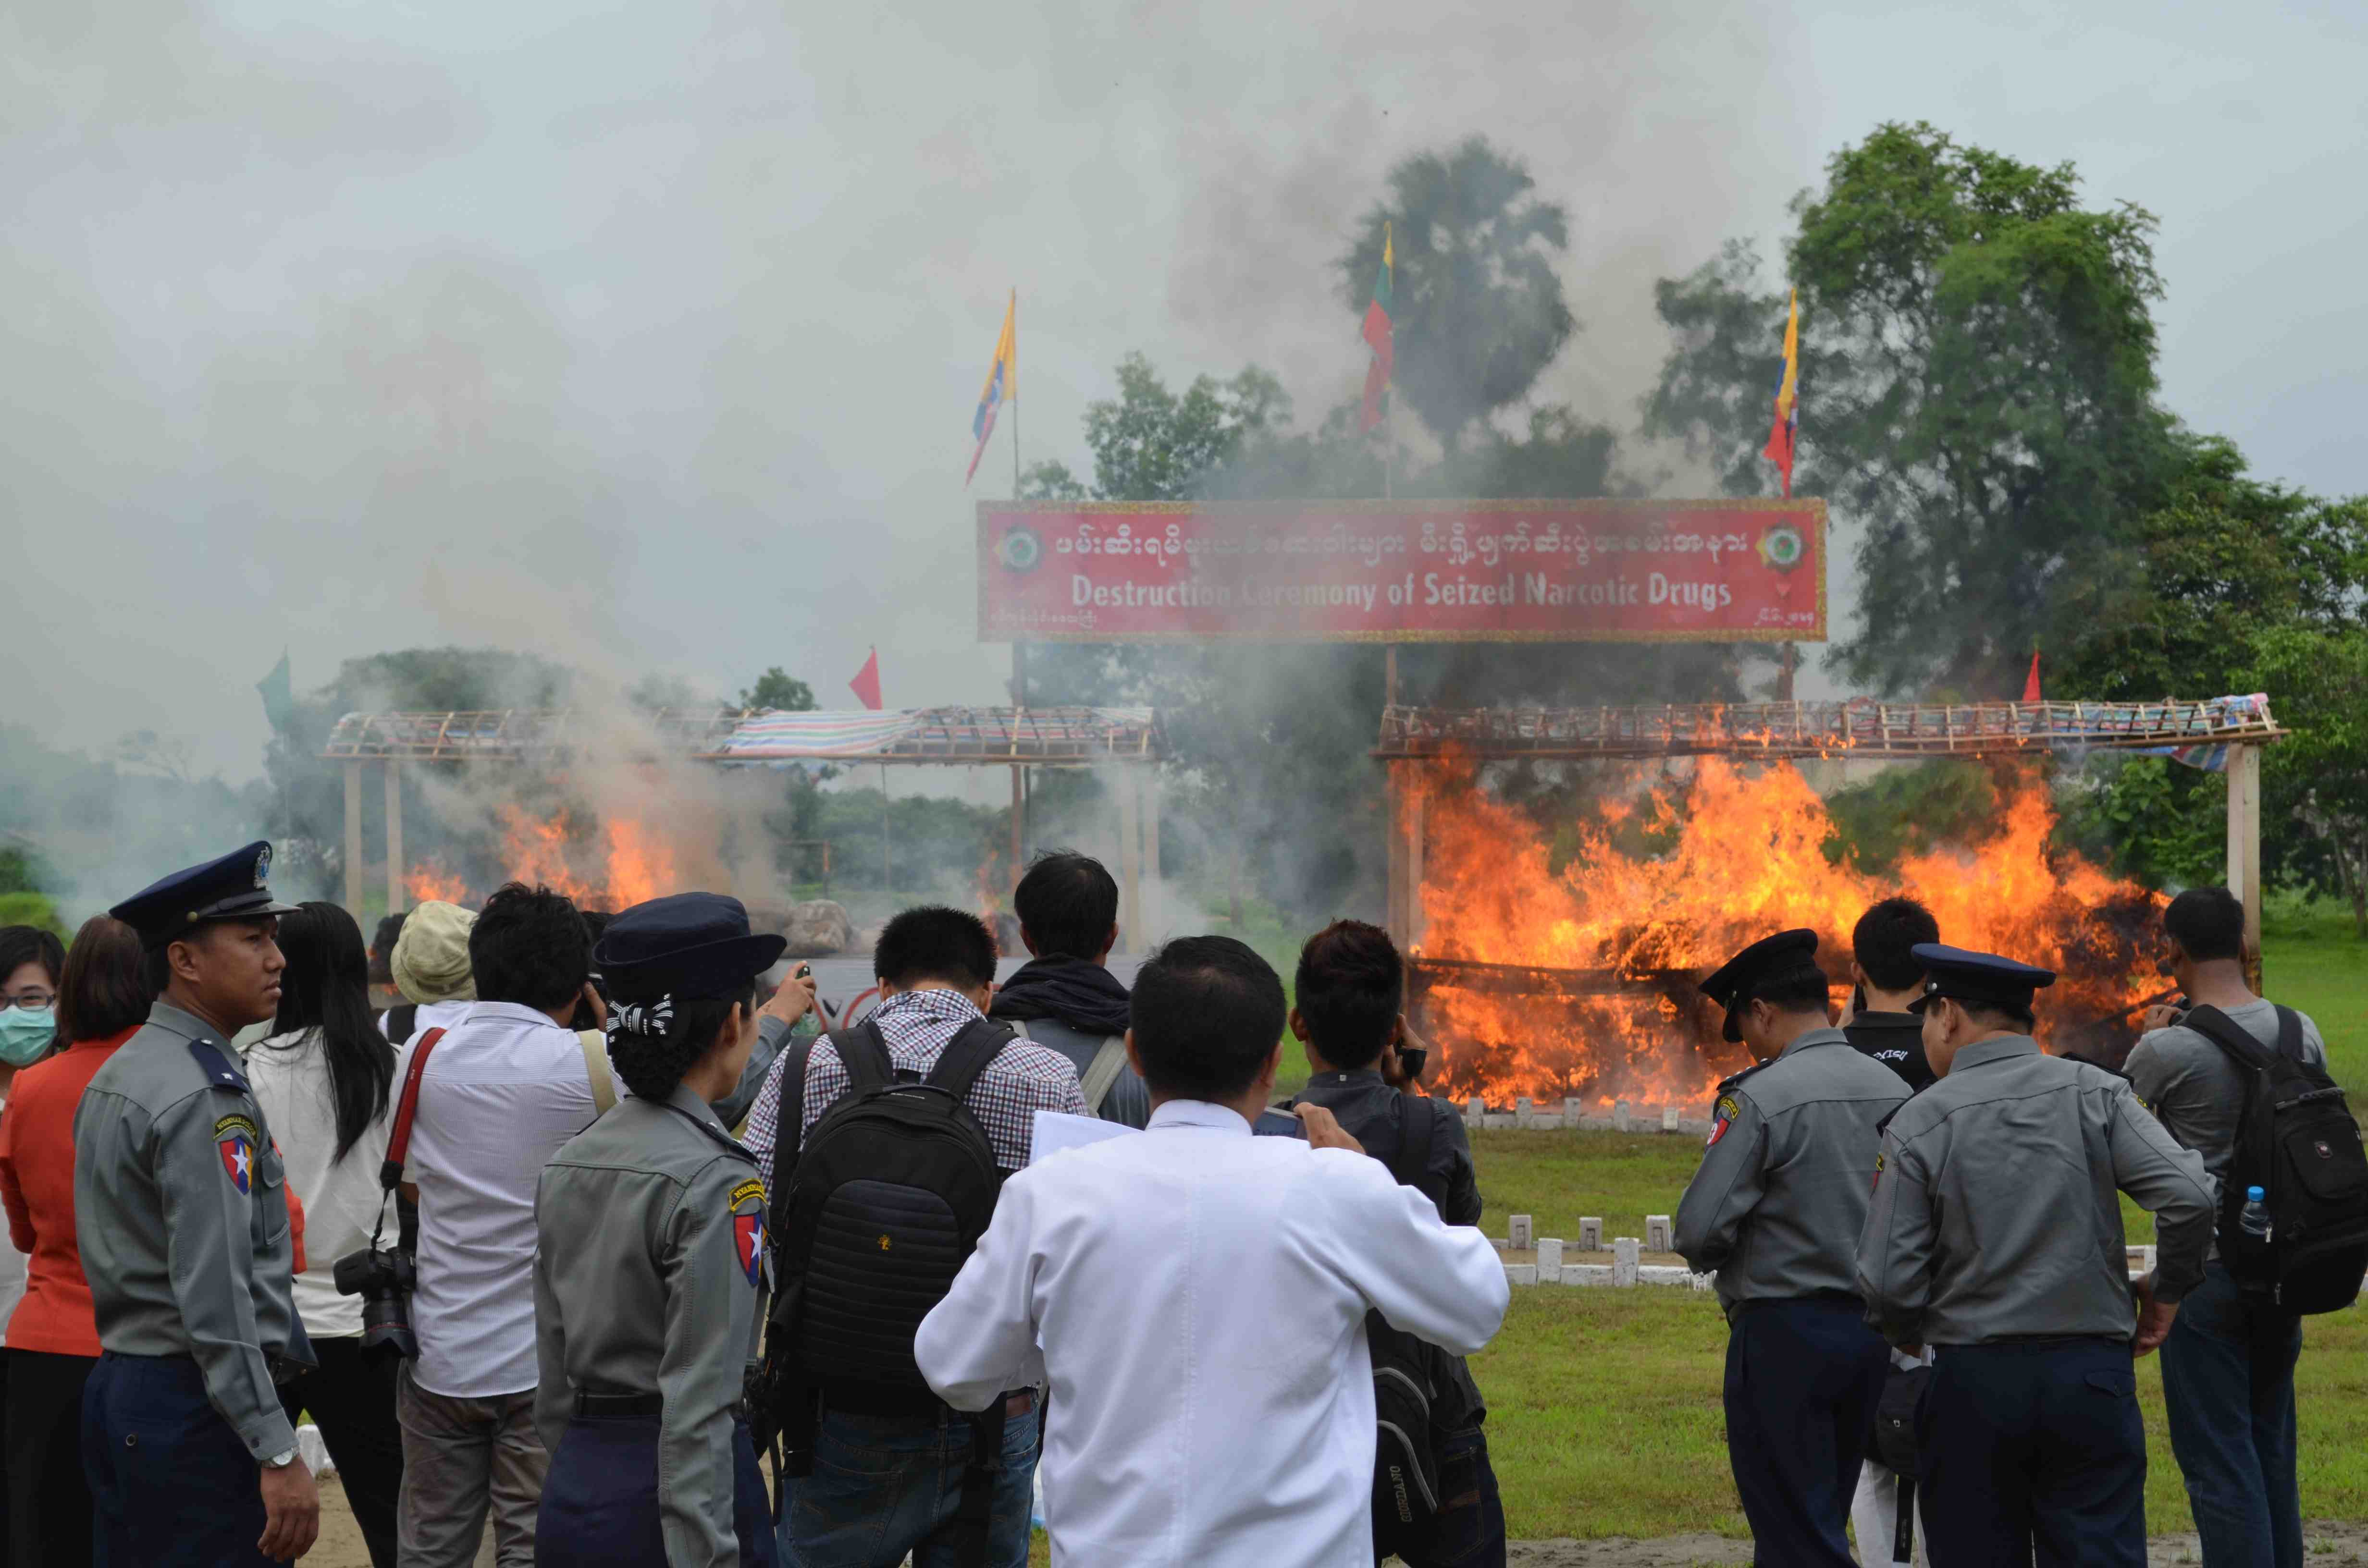 Police and media look on as an estimated US$ 14 million dollars worth of seized drugs burn at an event in Rangoon's Hlawga township on June 26. (PHOTO: Alex Bookbinder)